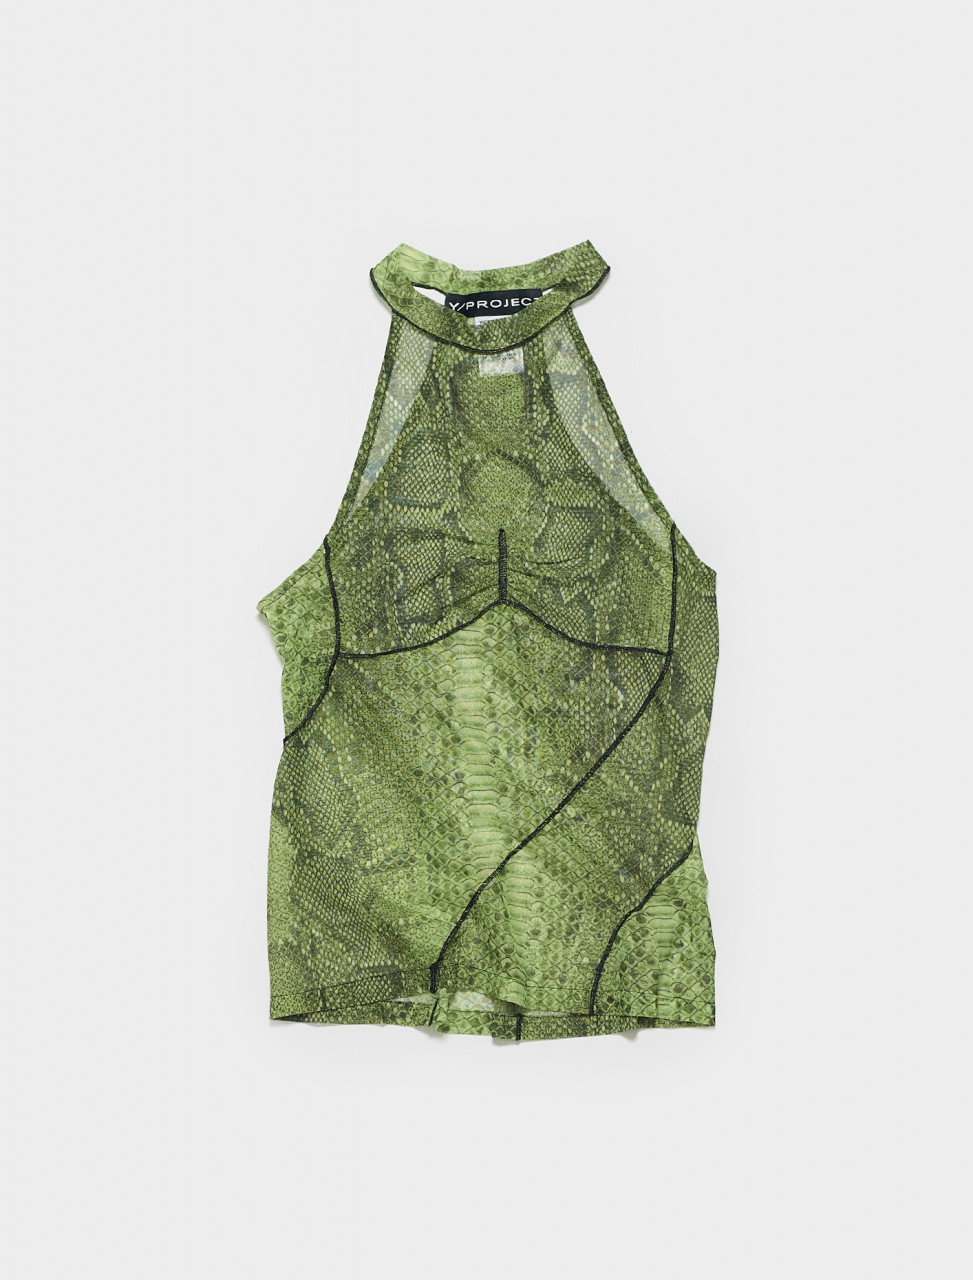 WTS42-S20 Y PROJECT MESH BIAS TANK TOP IN ELECTRIC GREEN PYTHON